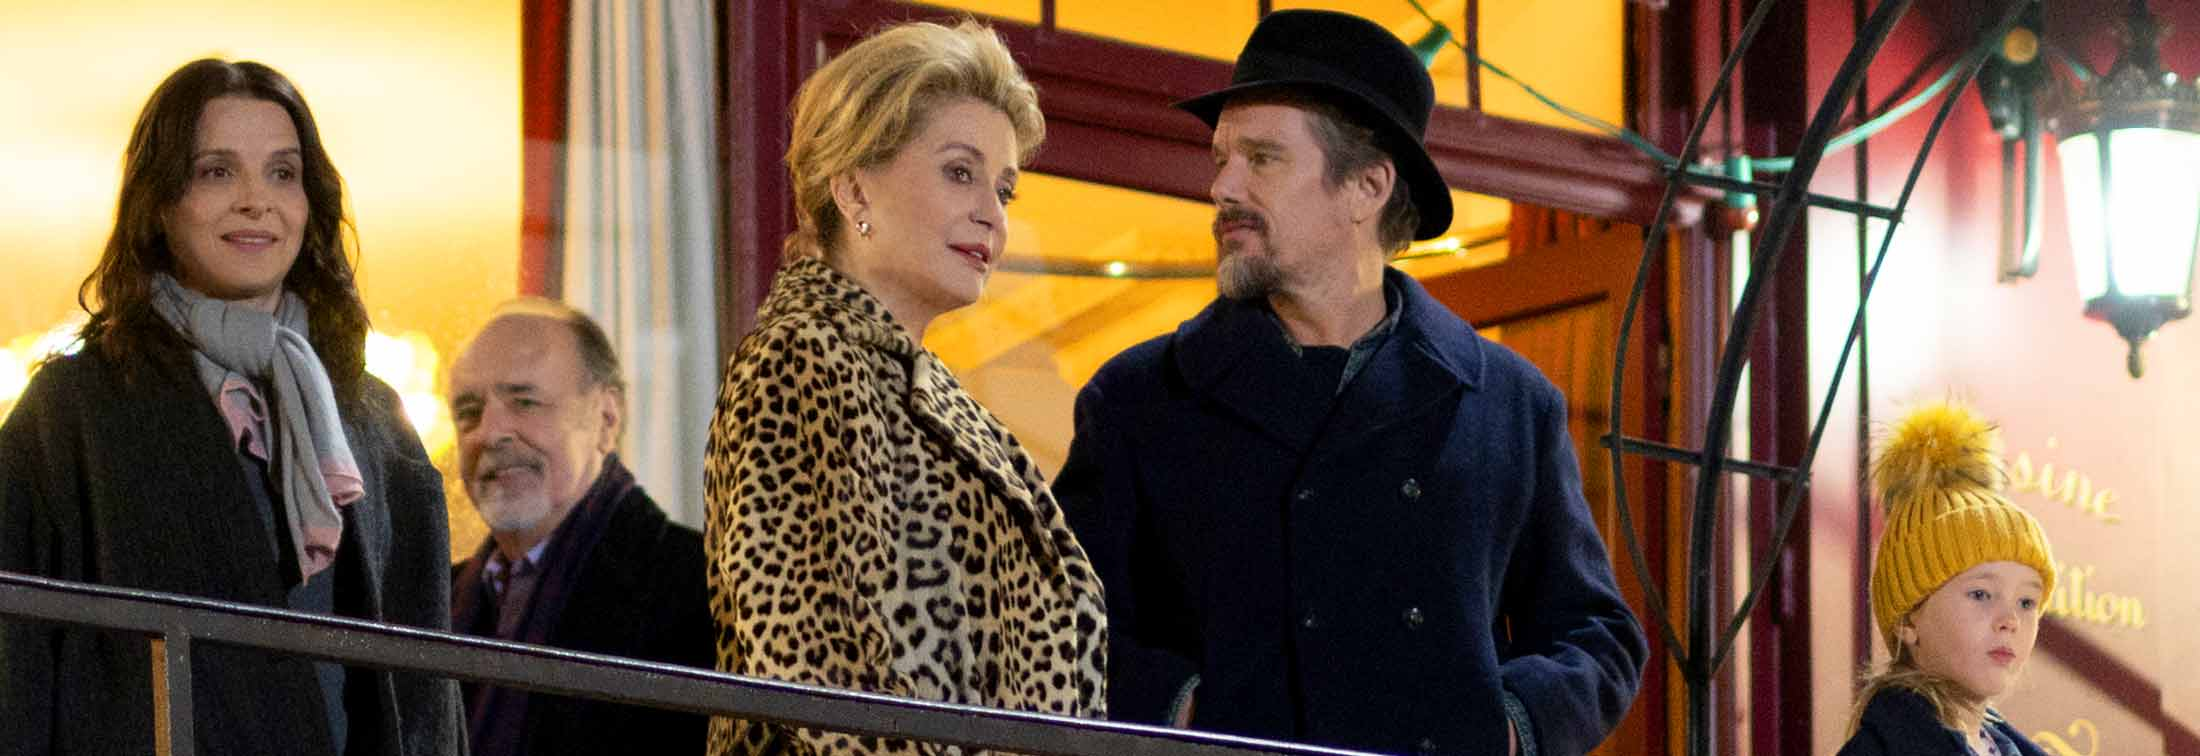 The Truth - Catherine Deneuve & Juliette Binoche team up for the first time